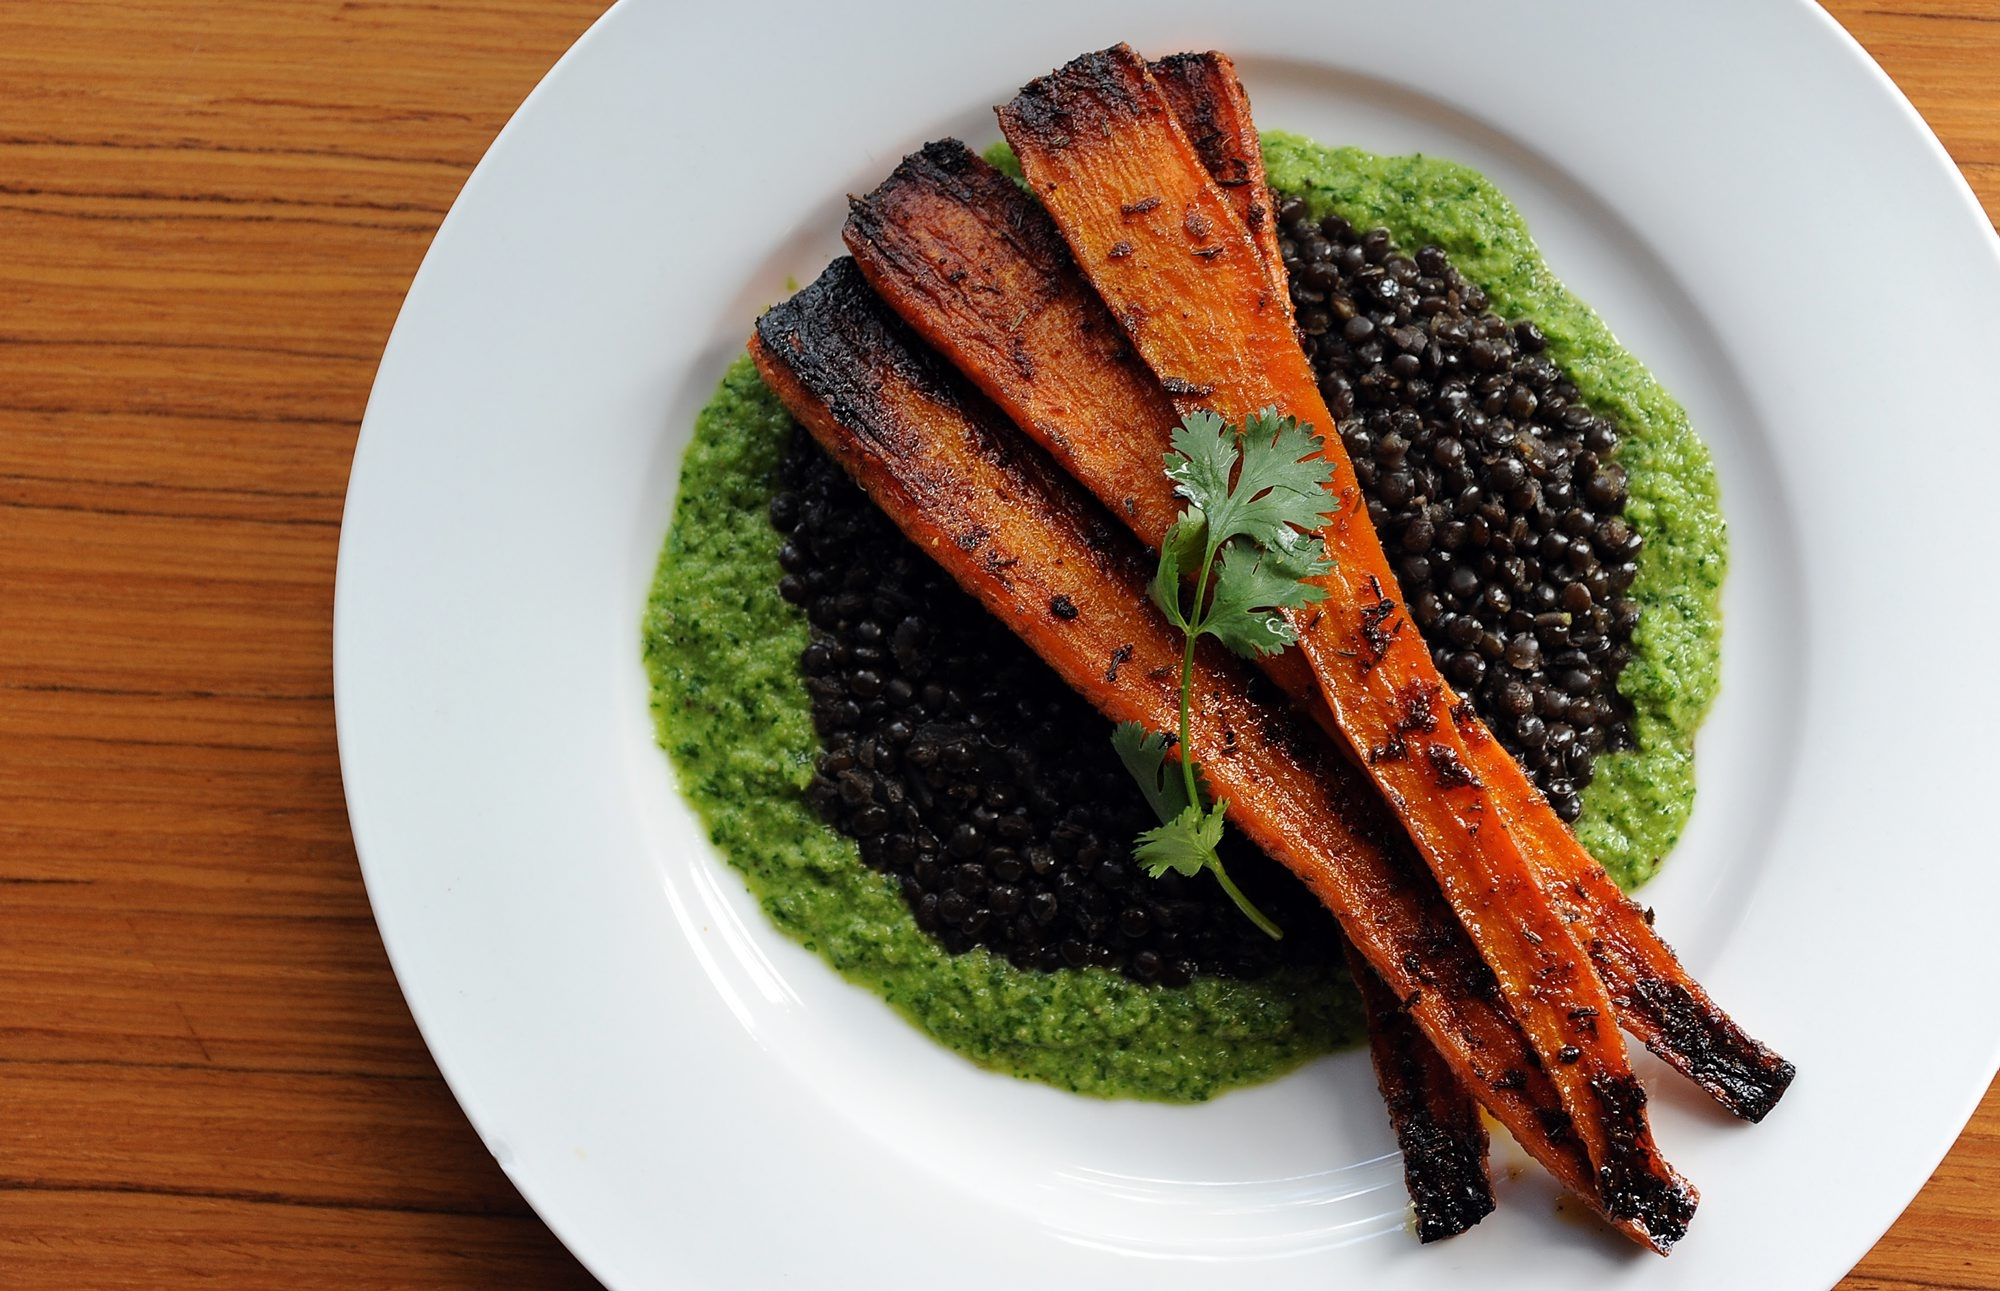 Roasted Carrots with Black Lentils and Green Harissa is a knife-and-fork dish, good for special occasions as well as weeknight dining.